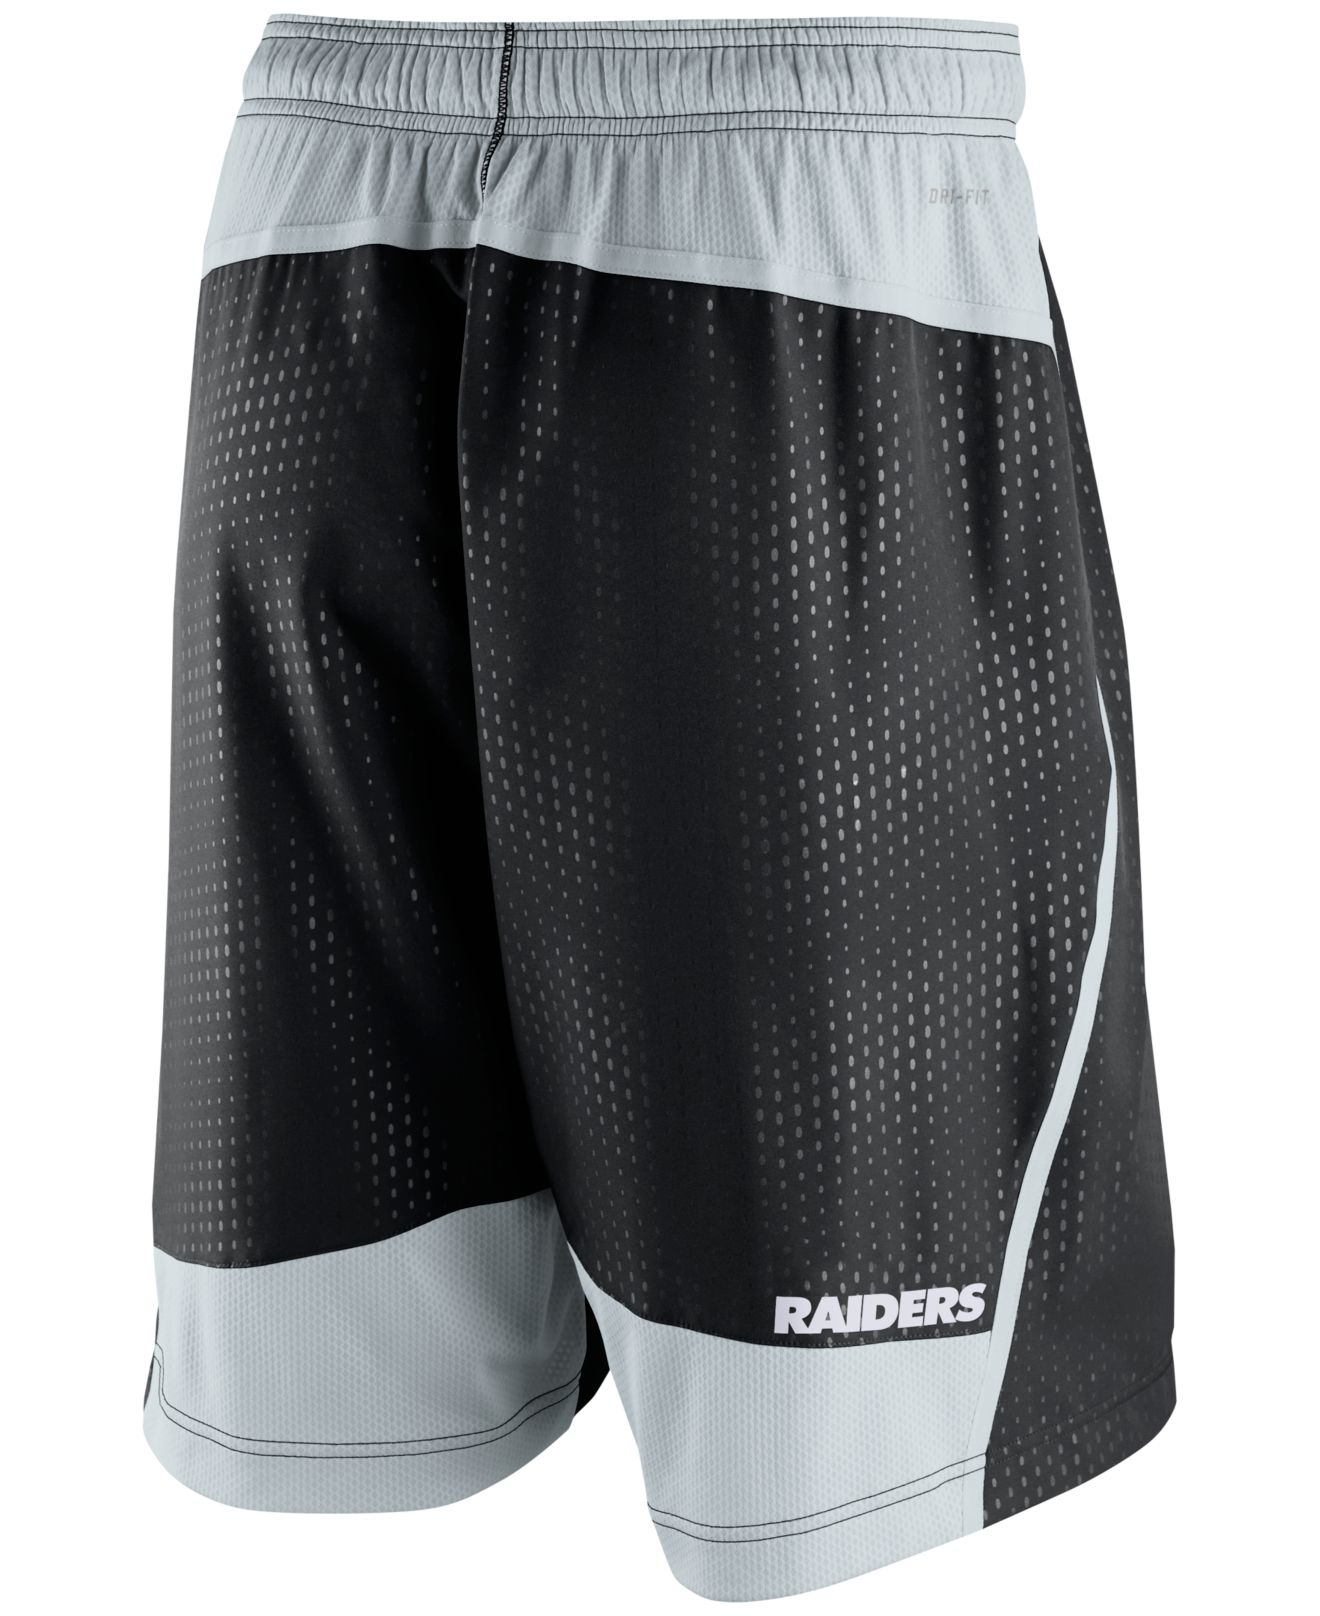 10d009c5 Nike Men's Oakland Raiders Dri-fit Fly Xl 3.0 Shorts in Black for ...